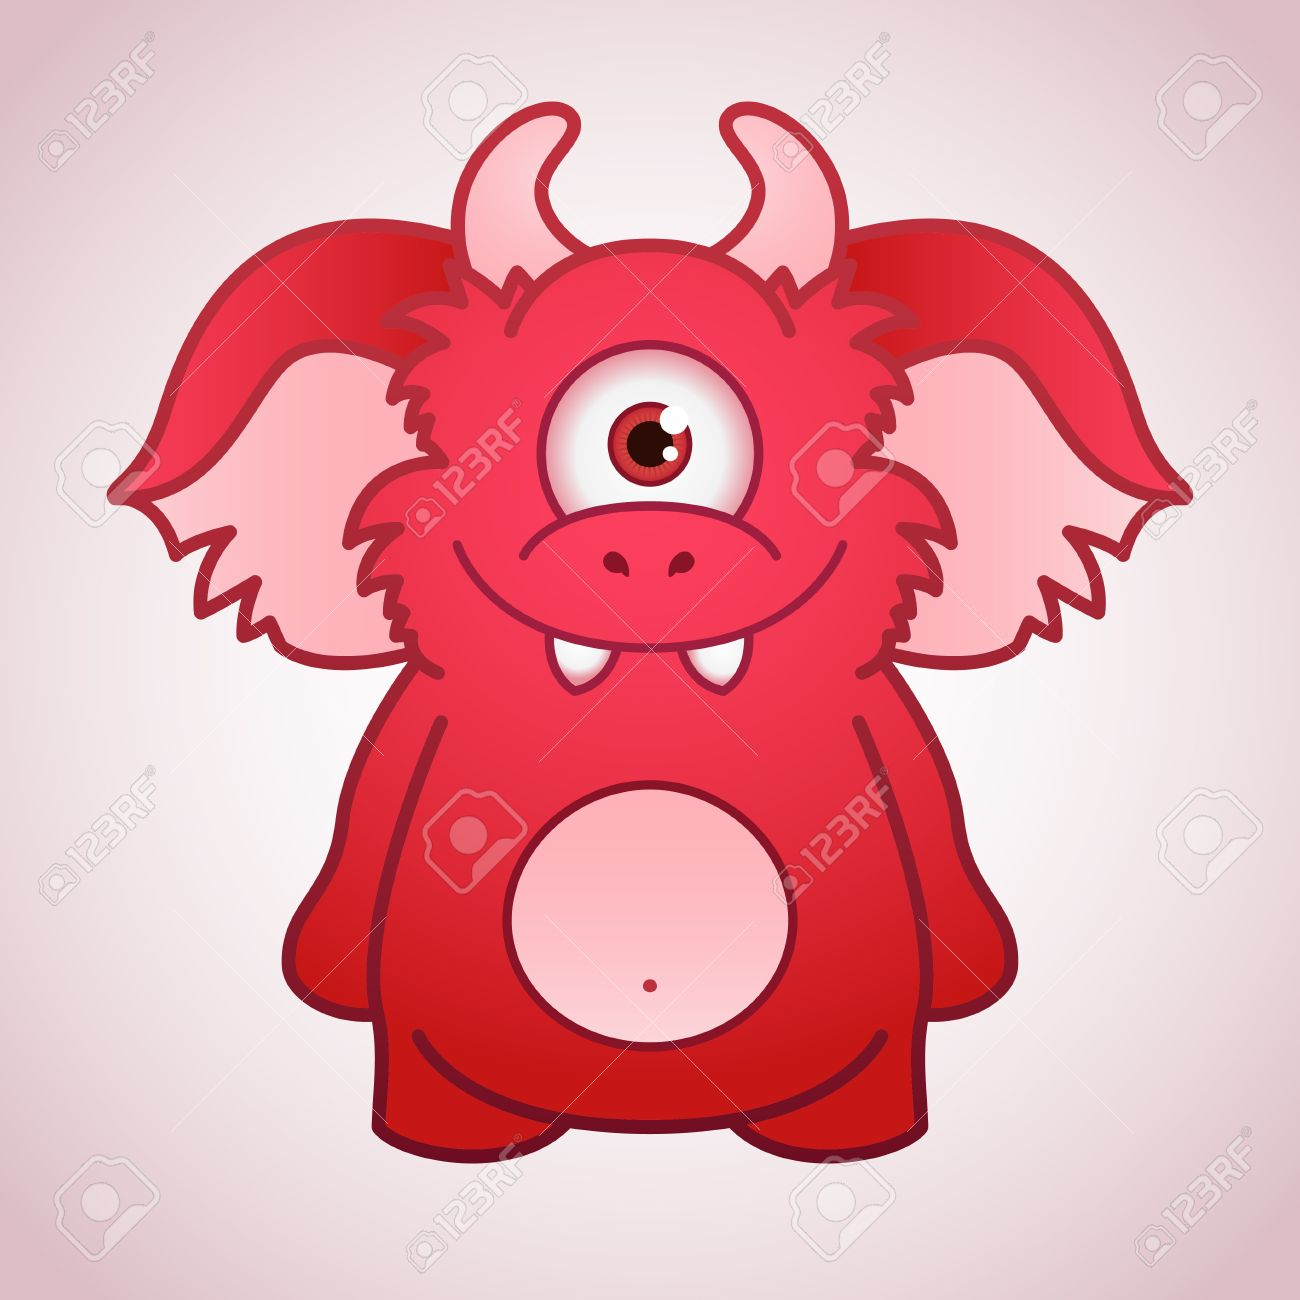 cute red monster royalty free cliparts vectors and stock